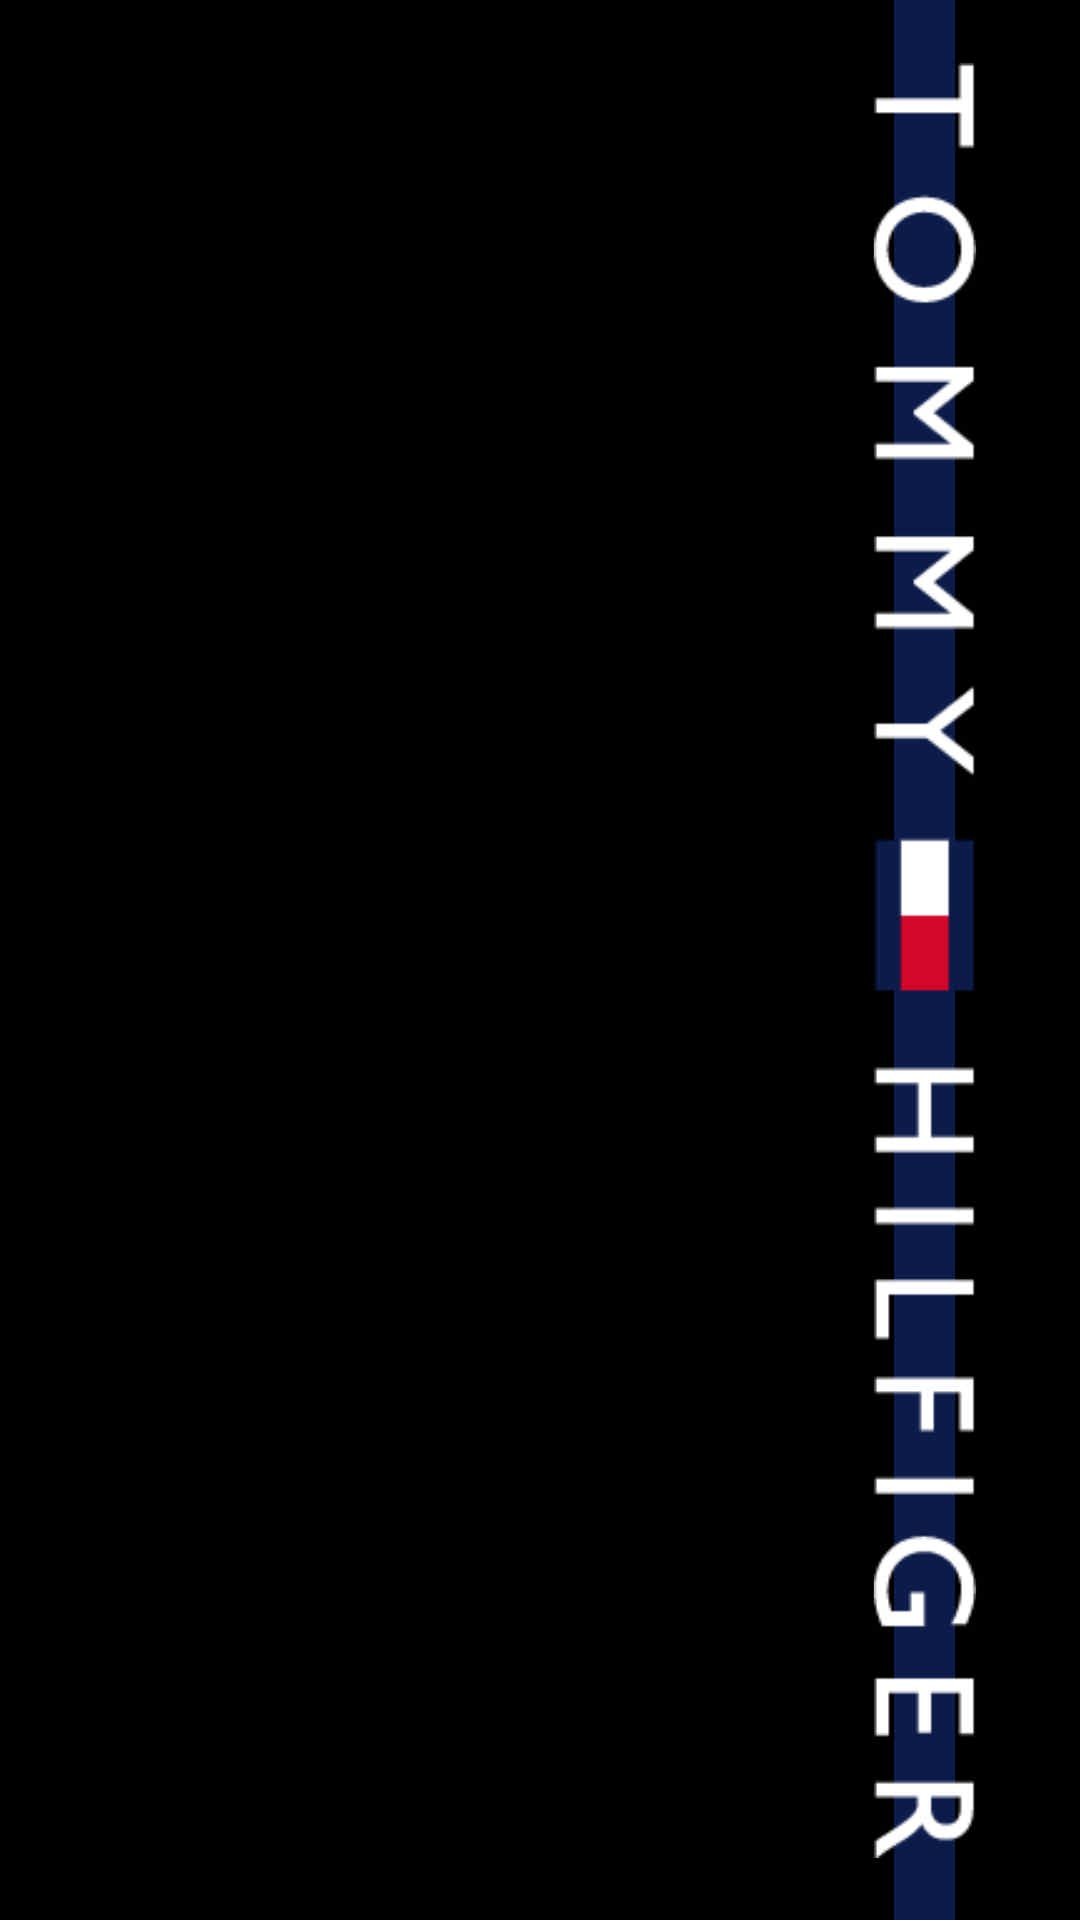 tommyhilfiger18 - TOMMY HILFIGER/トミー・ヒルフィガーの高画質スマホ壁紙20枚 [iPhone&Androidに対応]